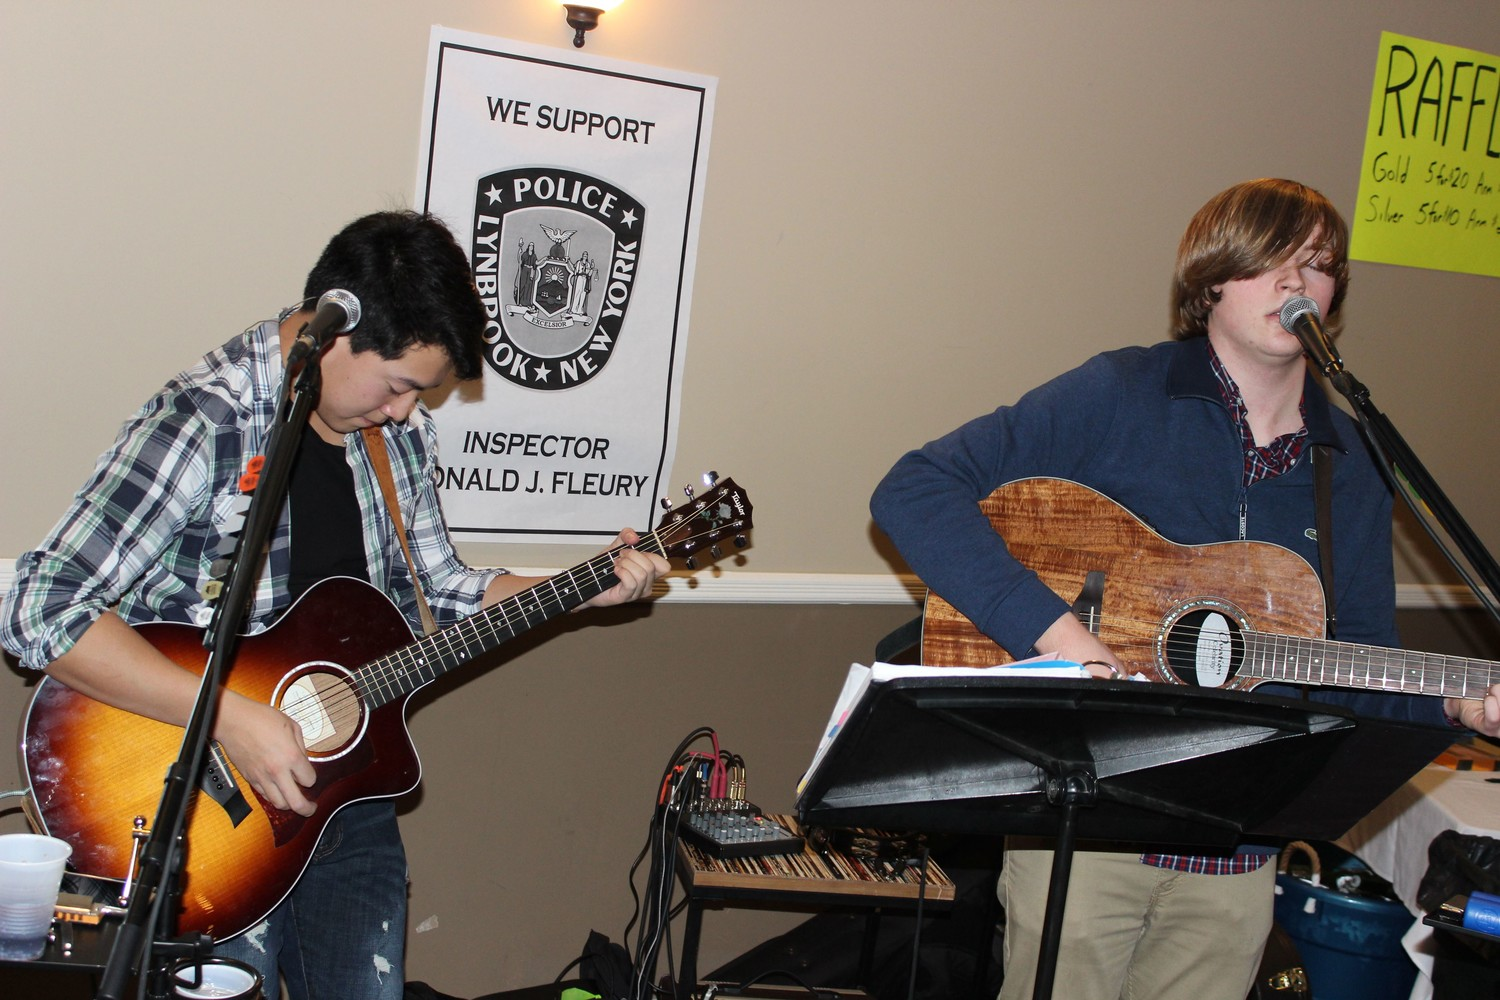 Local band Leaman Place showcased their talents at the event.